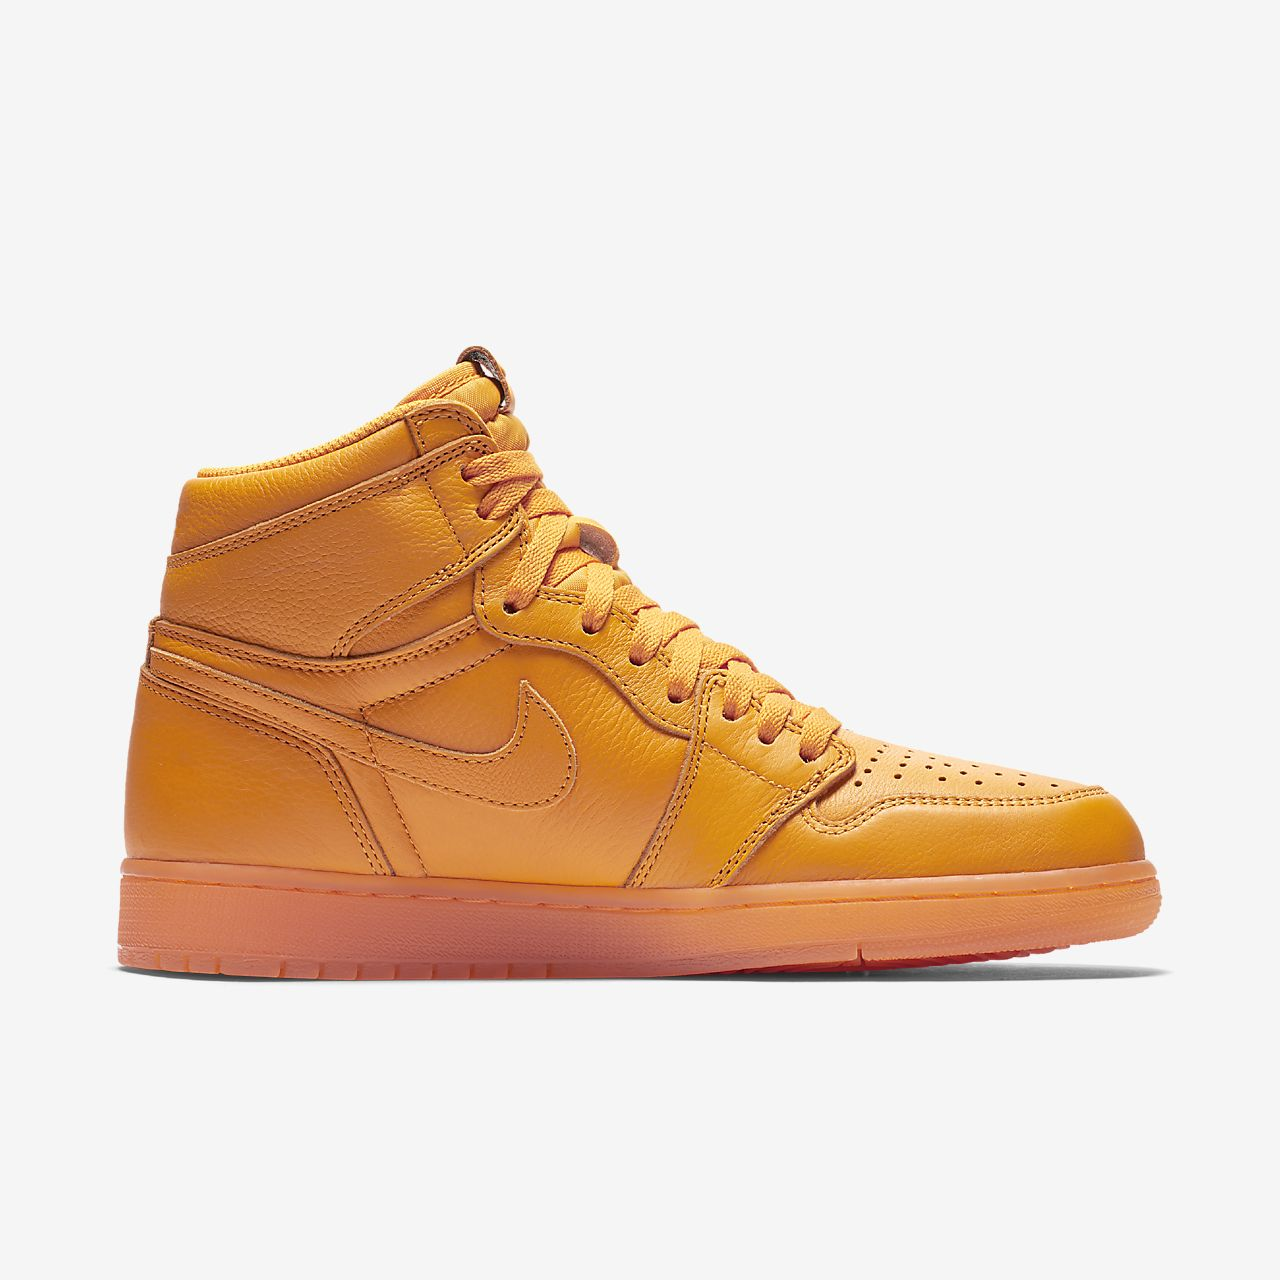 f84cf631f8156 Air Jordan 1 Retro High OG  Orange  Men s Shoe. Nike.com CA